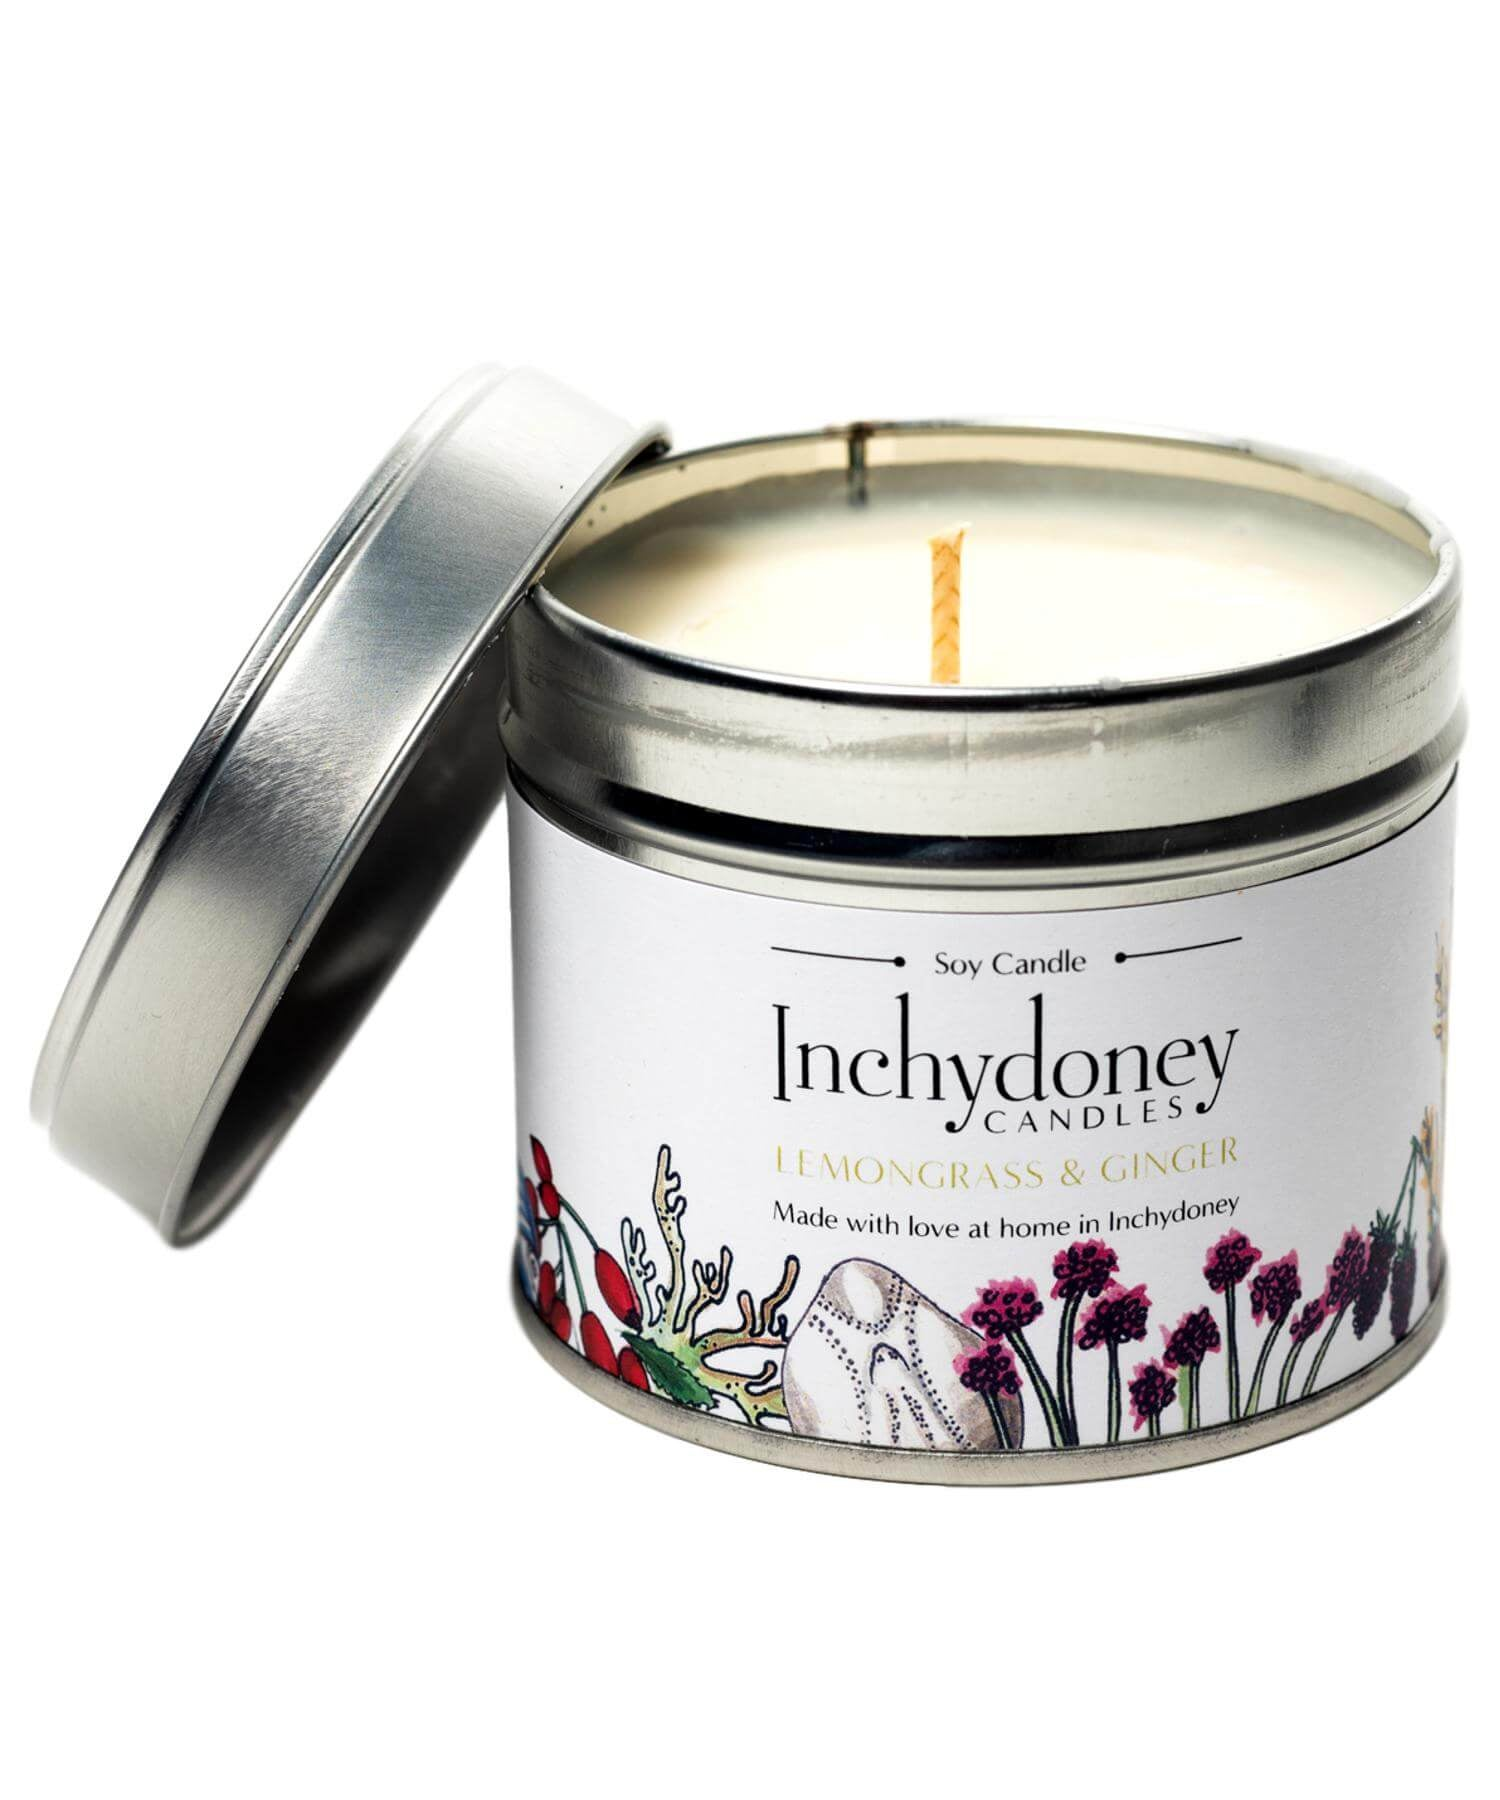 Travel Candle - Lemongrass & Ginger - [Inchydoney Candles] - Home Fragrance - Irish Gifts